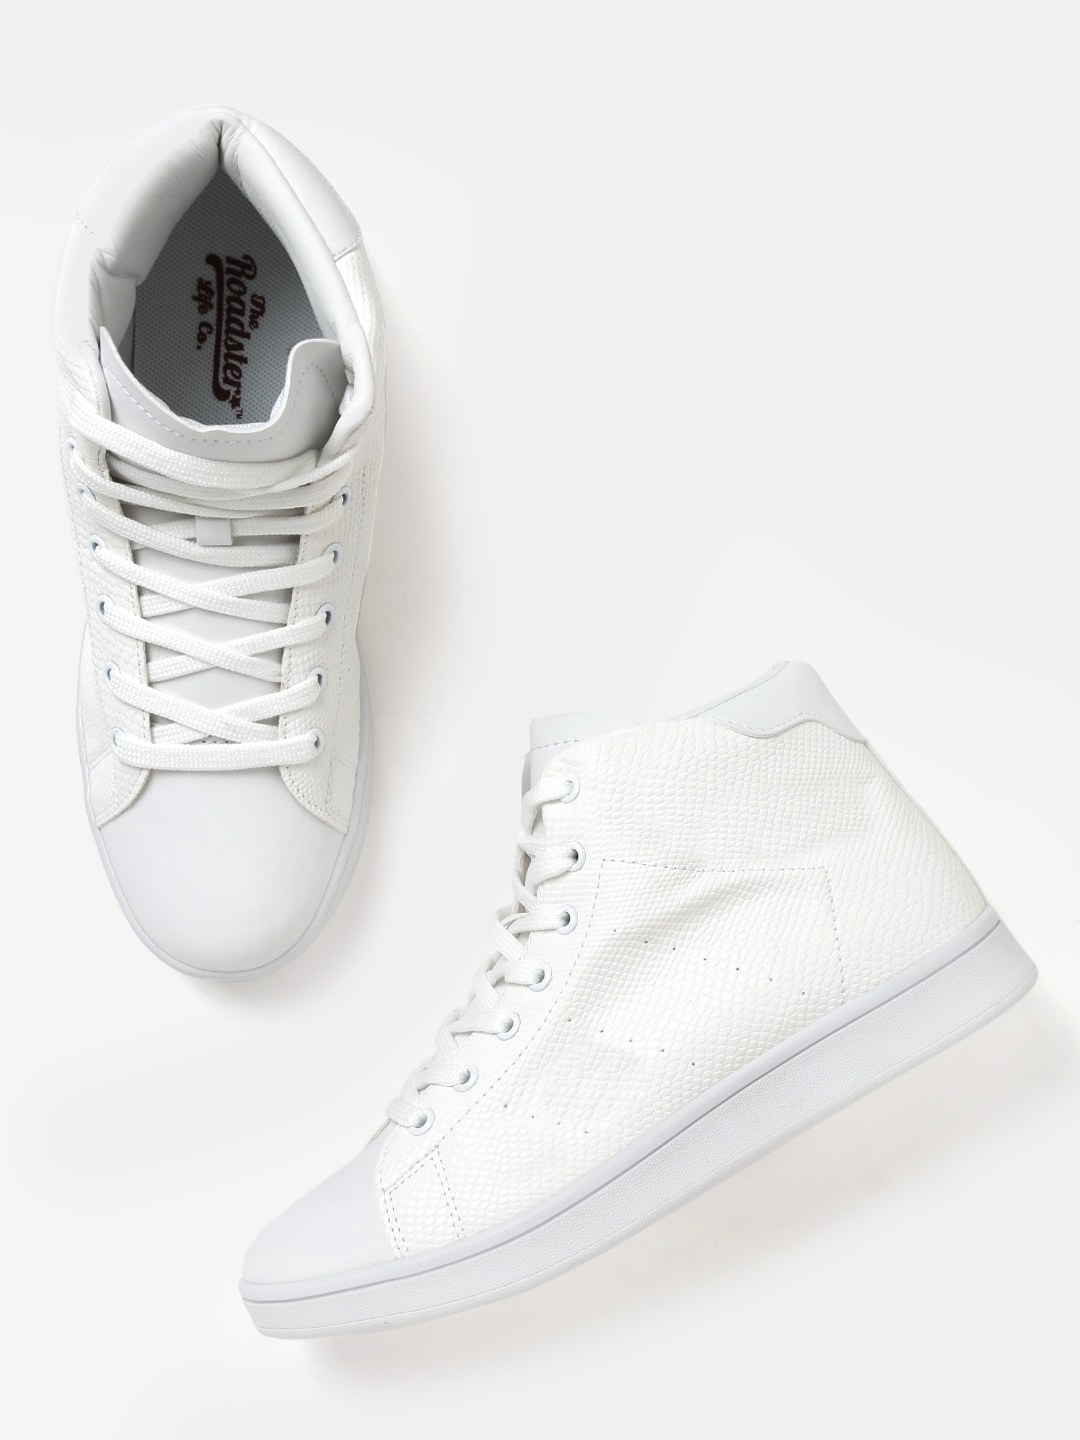 632d9512dc1 Buy Roadster Women White Textured Mid Top Sneakers - Casual Shoes ...